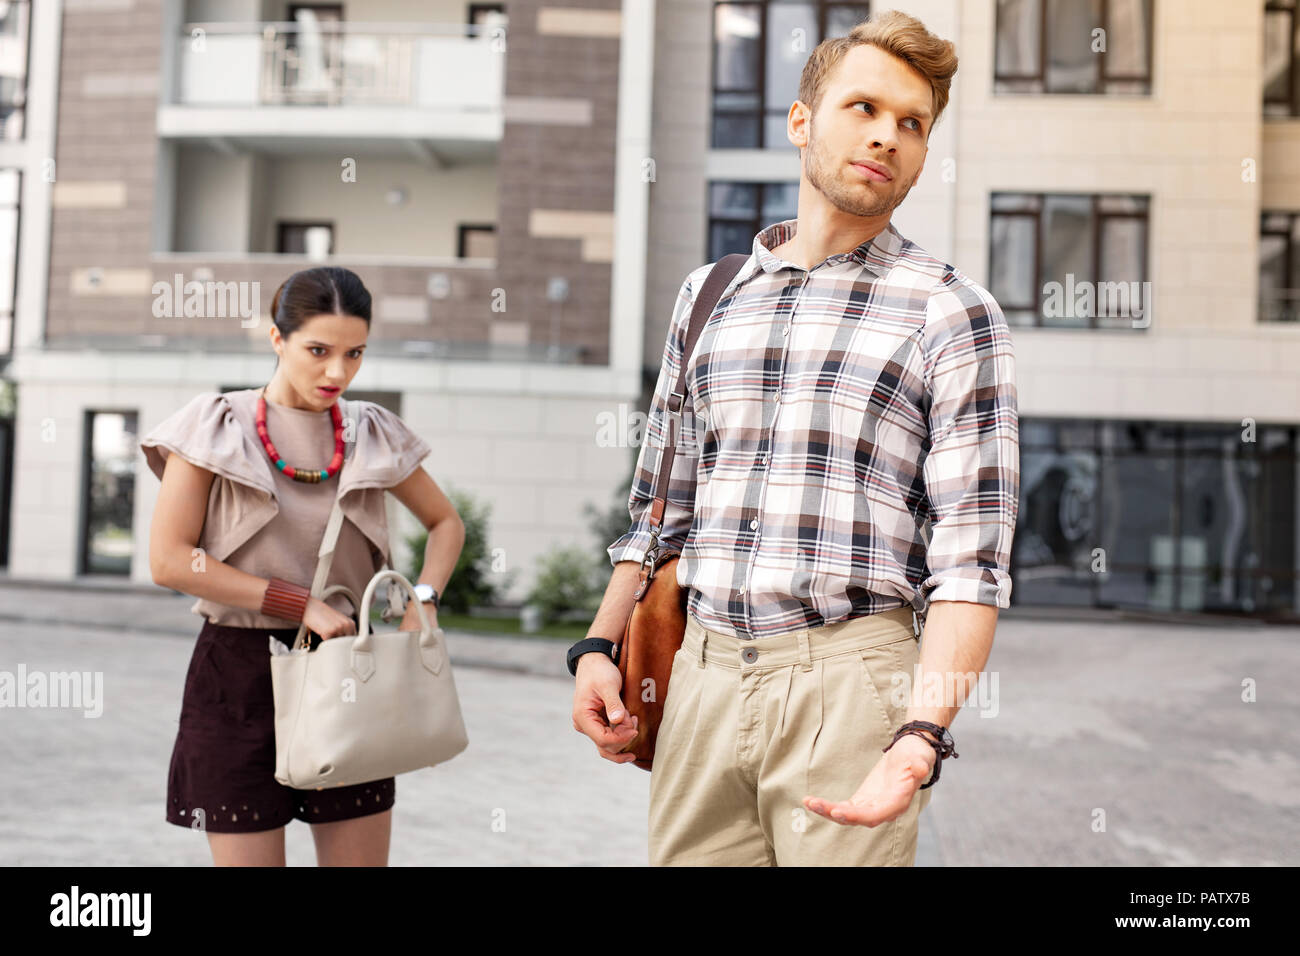 Unhappy irritated man waiting for his wife - Stock Image